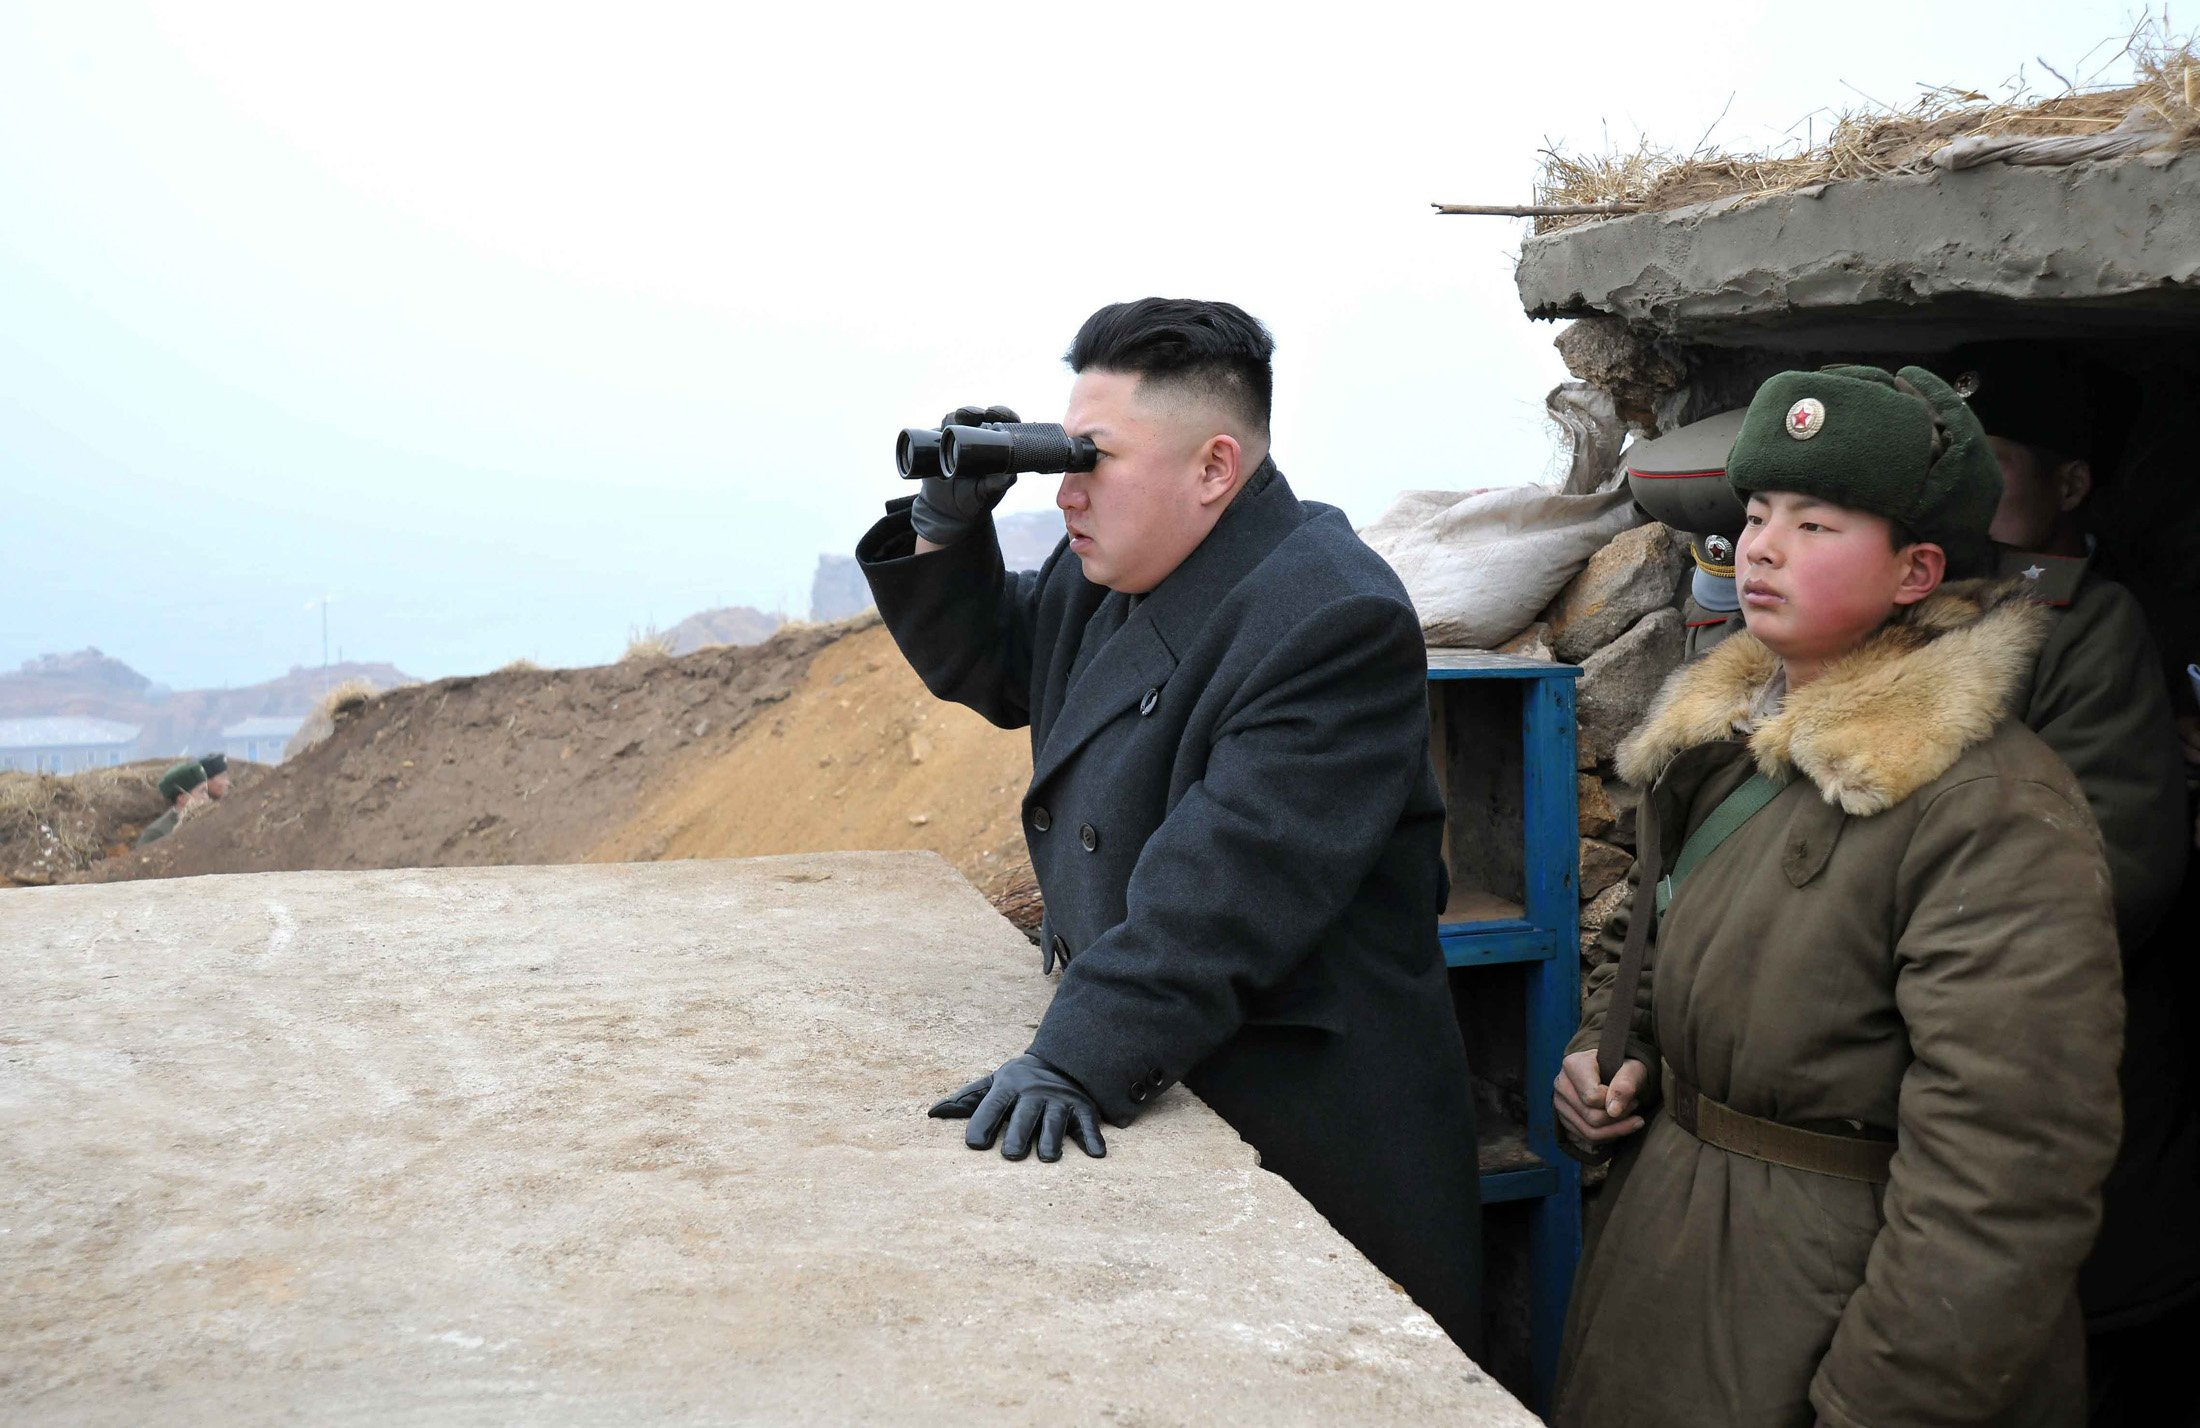 US Monitoring Possible North Korean Military Base in Syria Concern NK moving in chemical weapons possible nuke tech